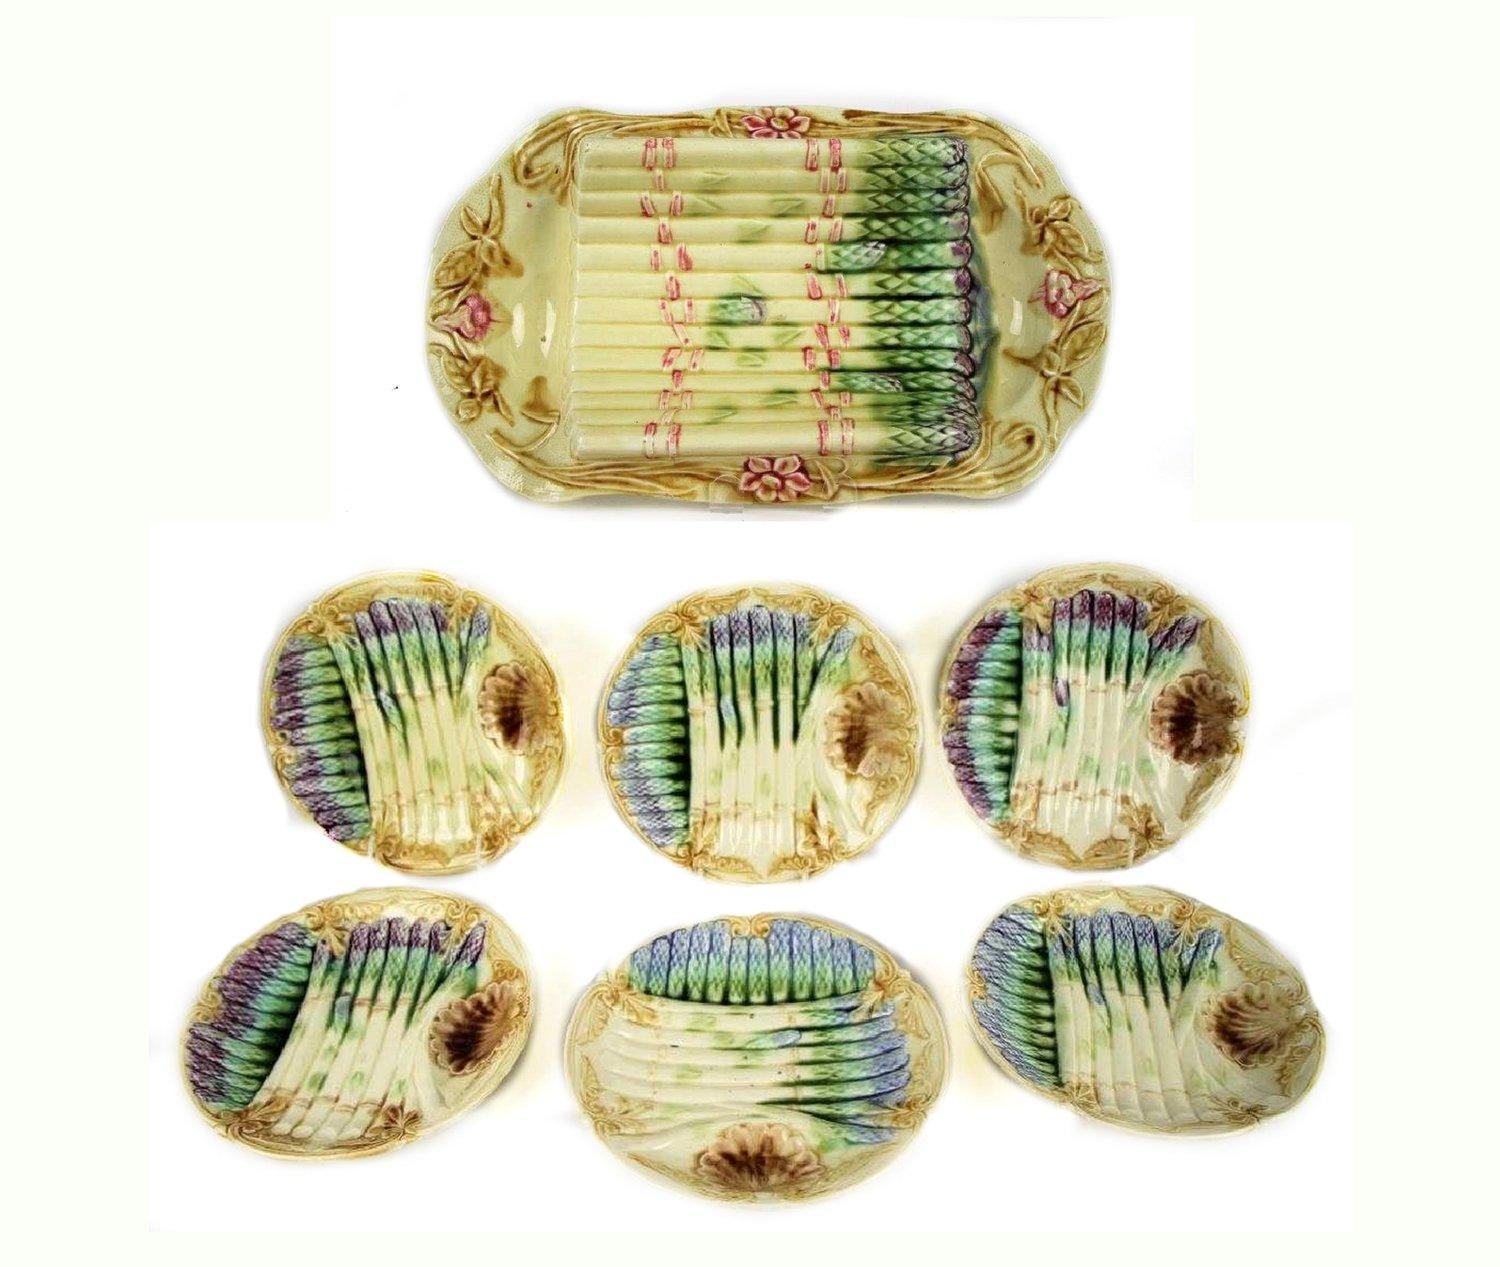 Onnaing French Majolica Asparagus Server and 6 Plates